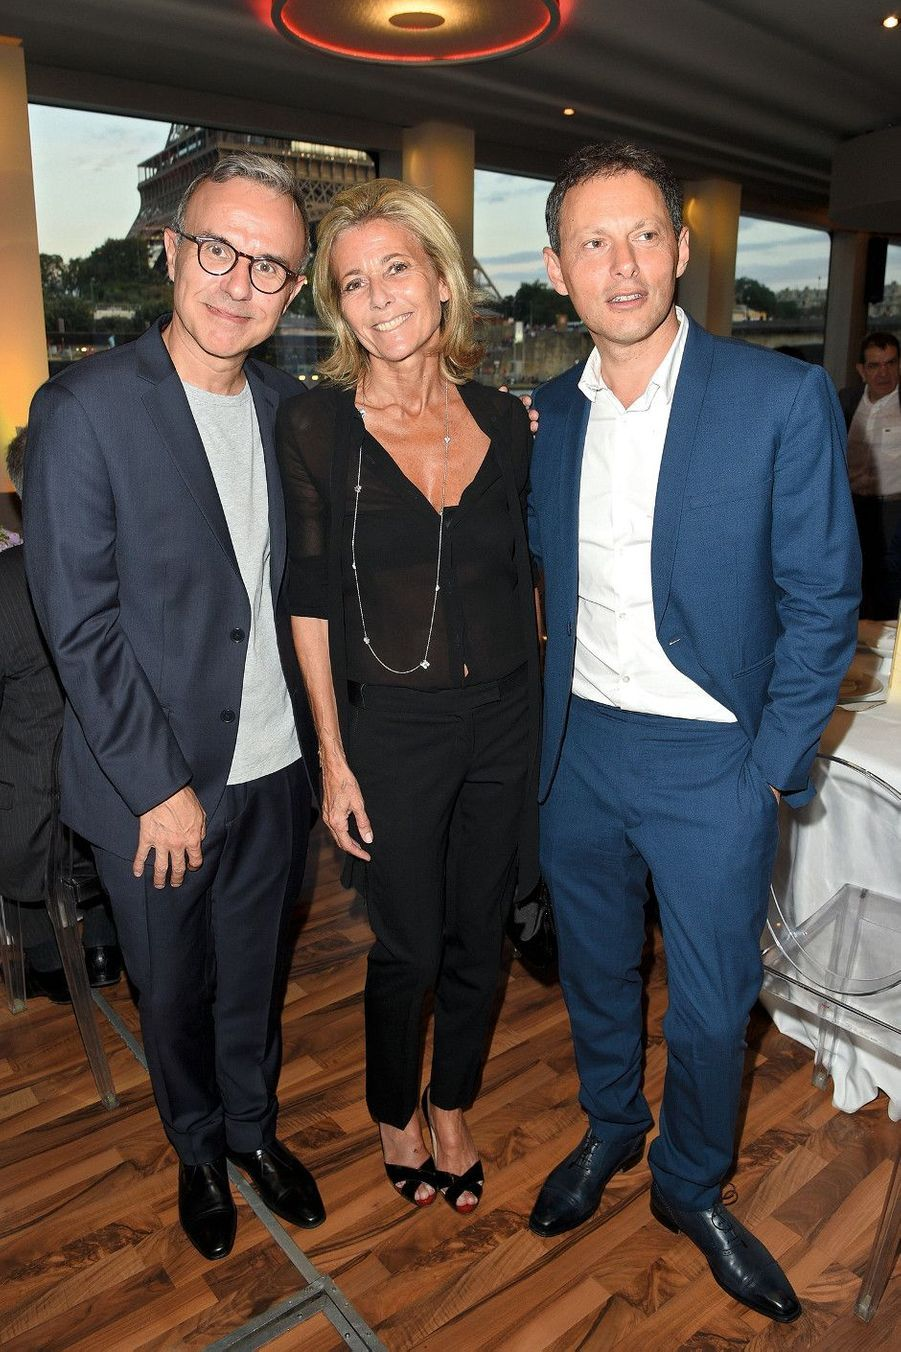 Philippe Besson, Claire Chazal, Marc-Olivier Fogiel.